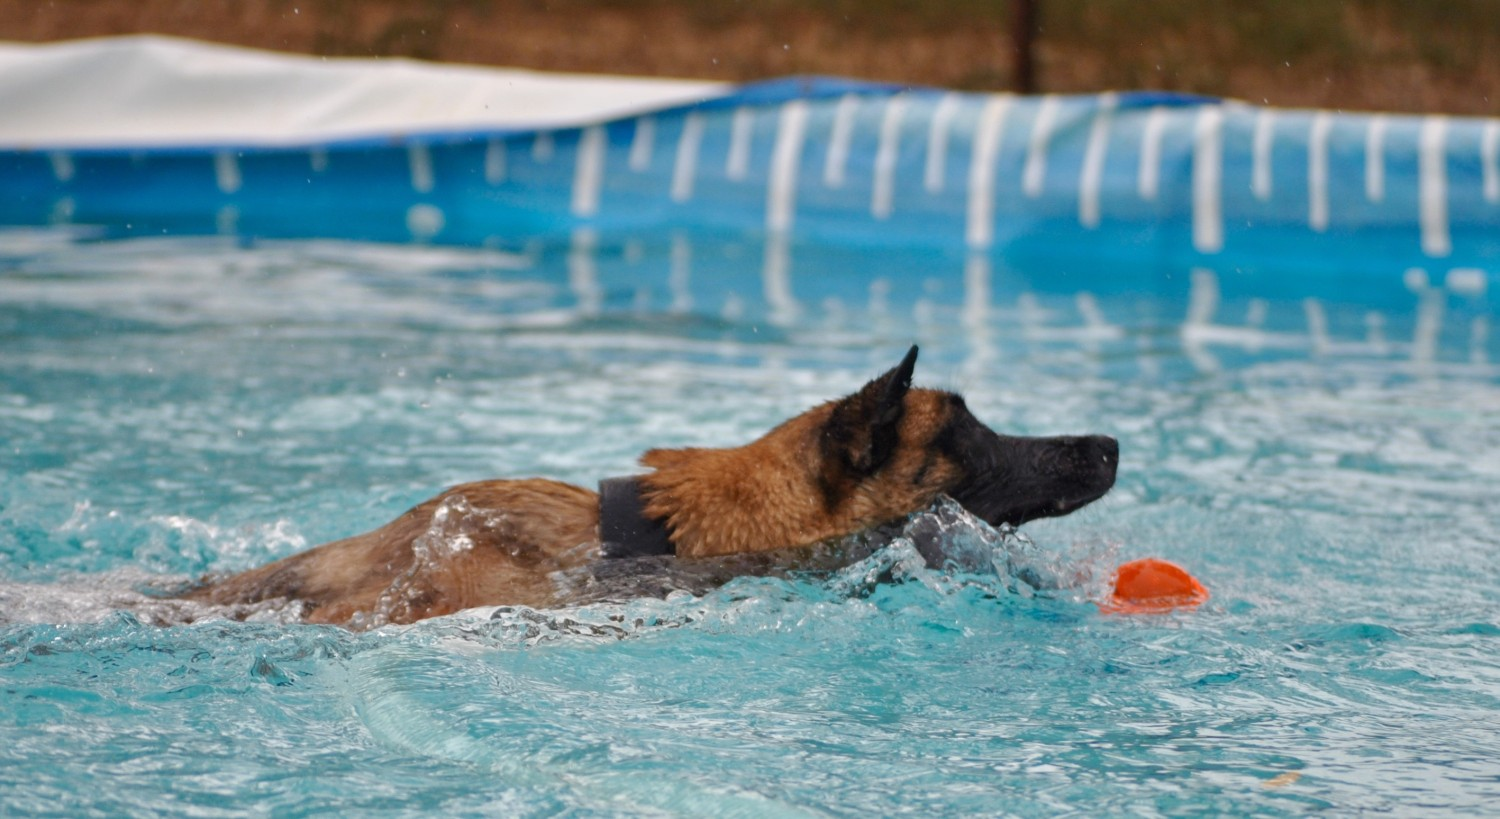 Safe to Swim Another Day – Water Safety for the Working Dog